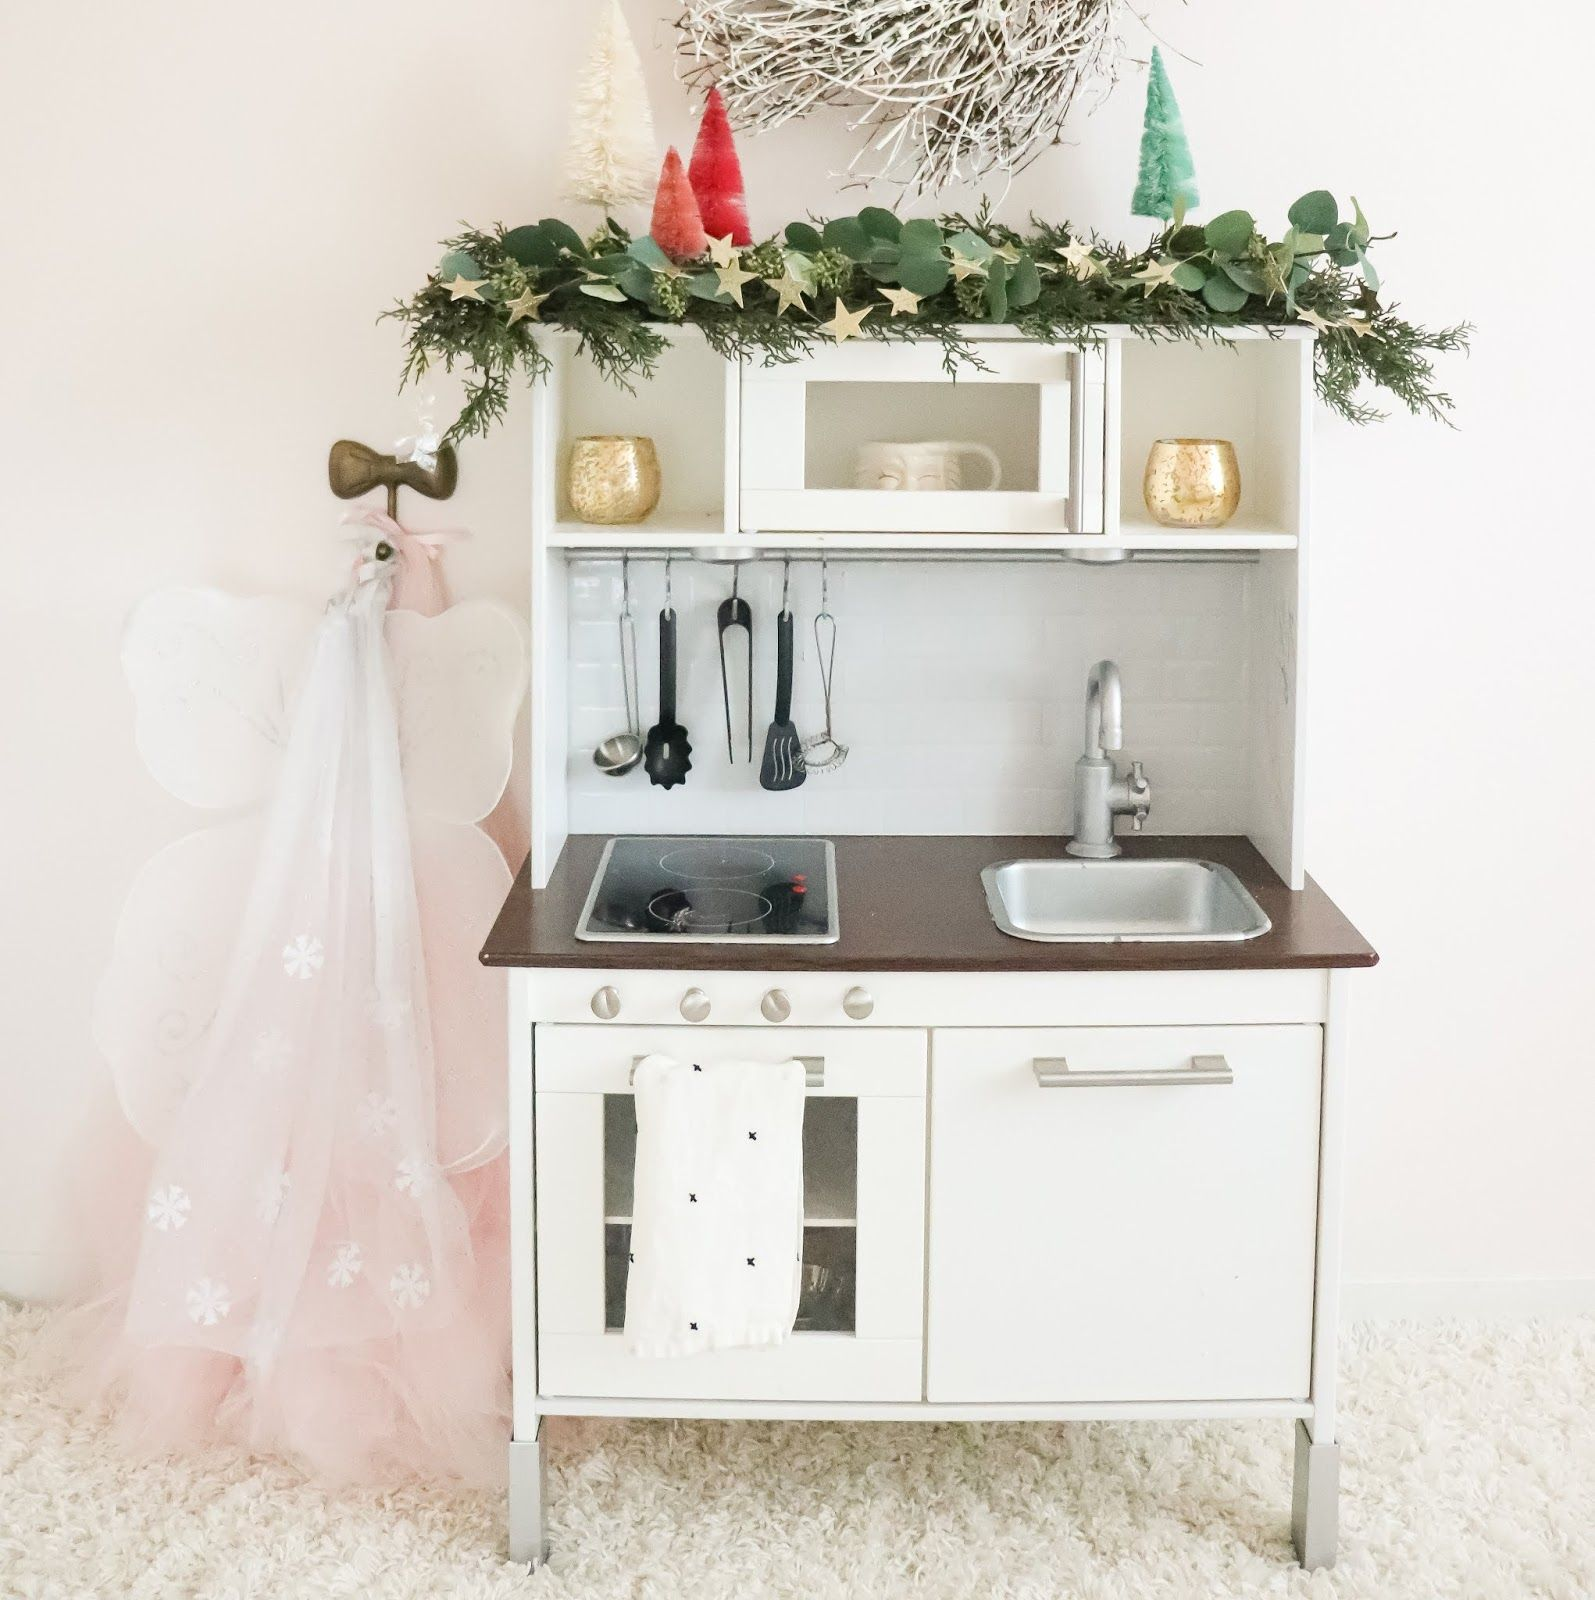 DIY upgraded play kitchen in 2020 Play kitchen, Diy play